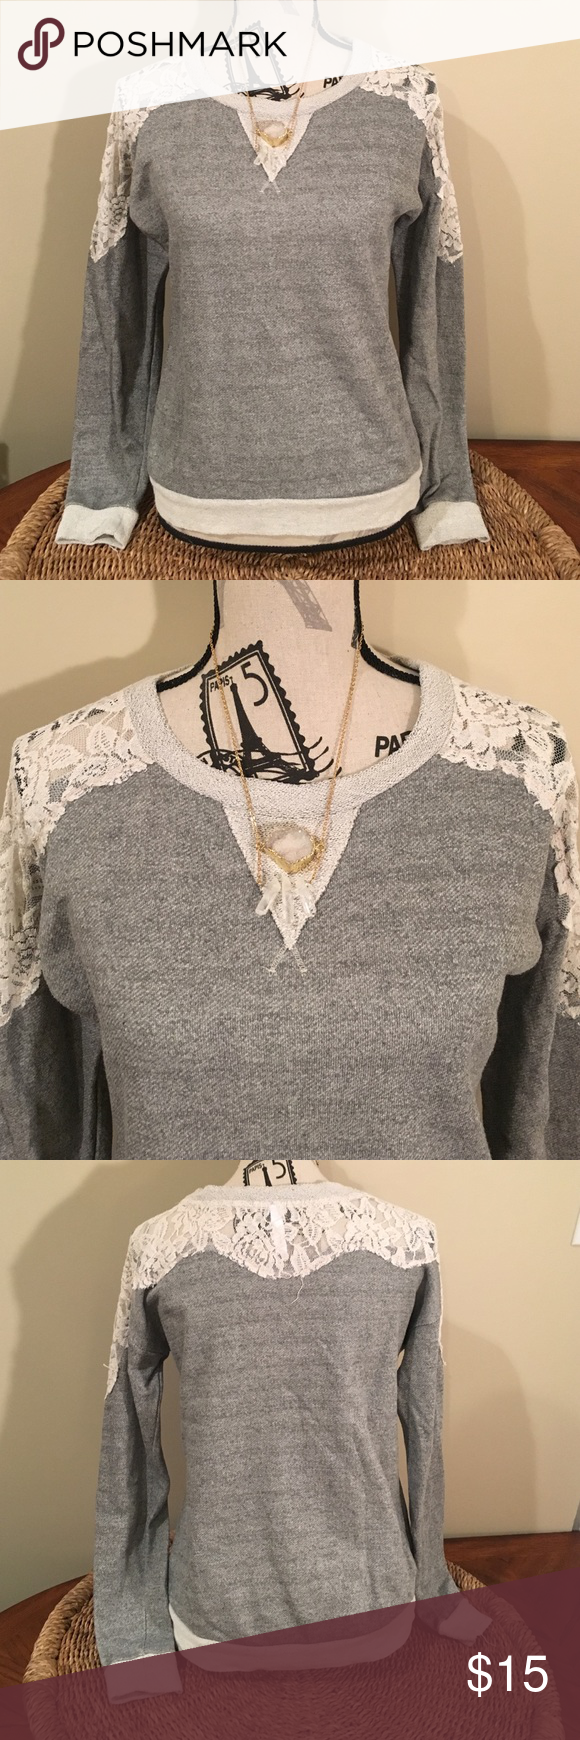 💖SALE💖 Sweatshirt with lace Gray sweatshirt with lace on top. Adorable sweatshirt worn a couple times. Xhilaration Sweaters Crew & Scoop Necks